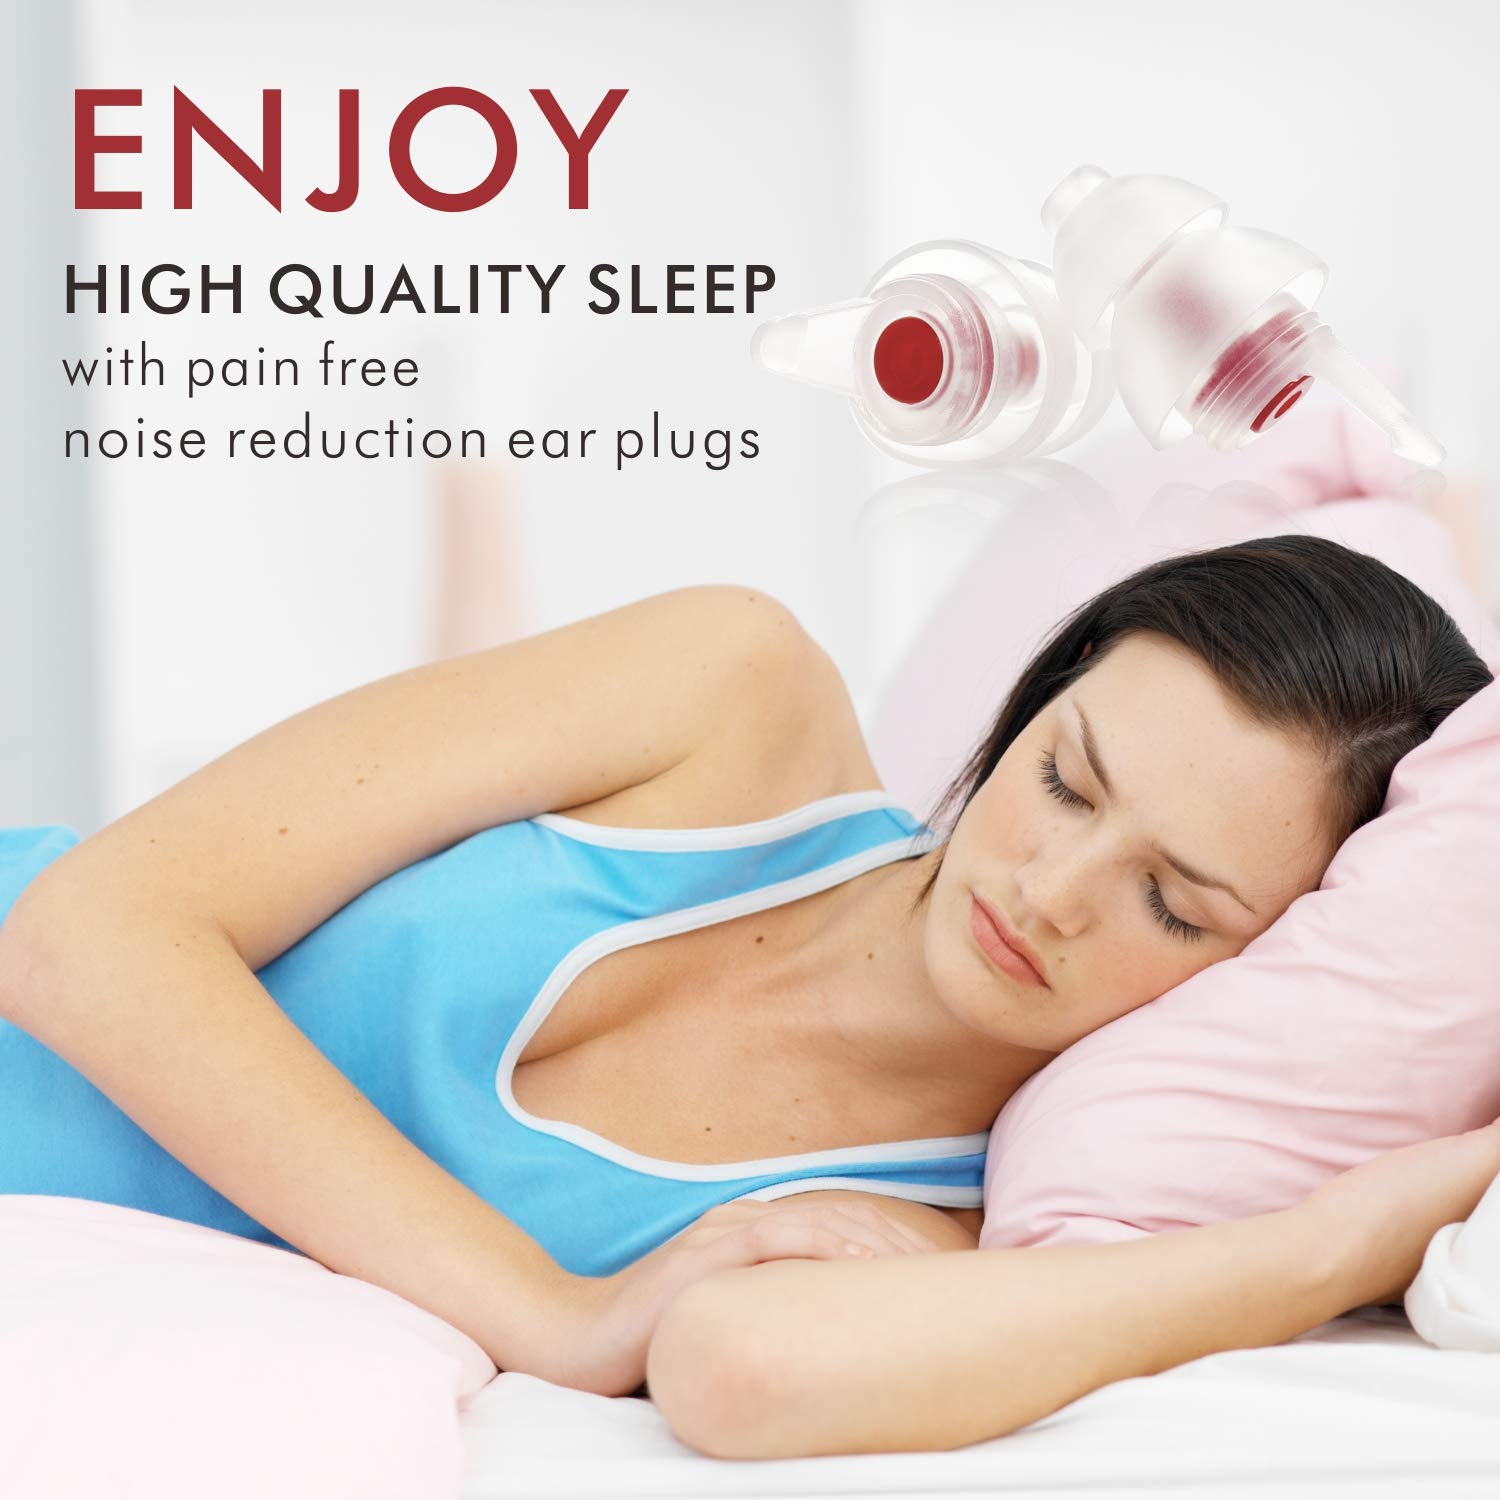 Small Ear Plugs for Sleeping, Ear Plugs for Women with Smaller Ear Canals-Upgraded Filter(SNR31dB)- Noise Reduction Ear Plugs for Snoring,Work, Office,Airplane Travel, Gardening by softvox (Image #3)